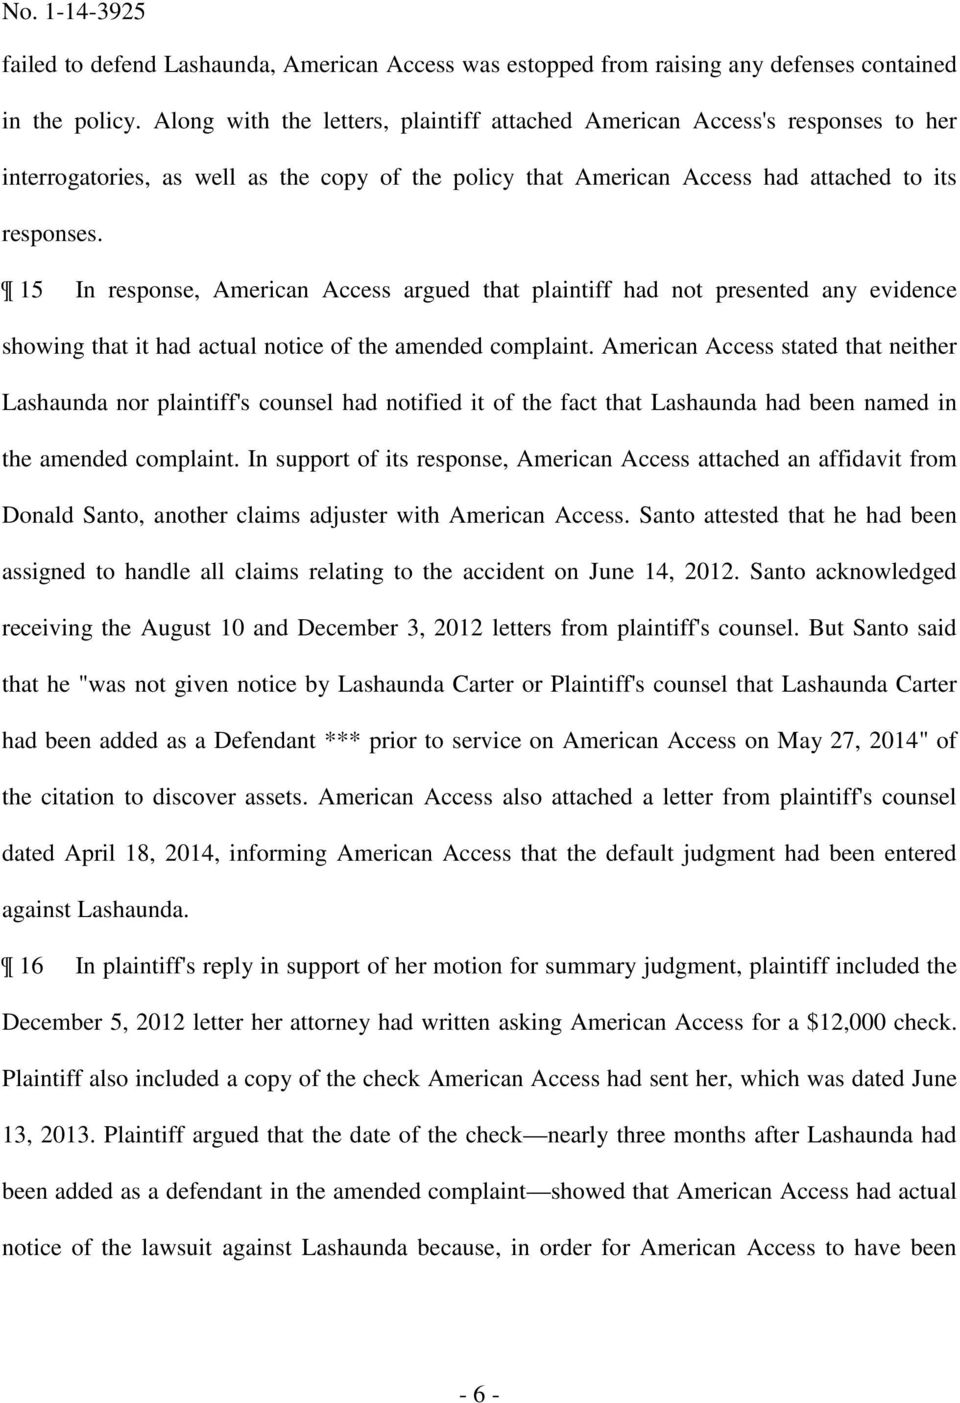 15 In response, American Access argued that plaintiff had not presented any evidence showing that it had actual notice of the amended complaint.